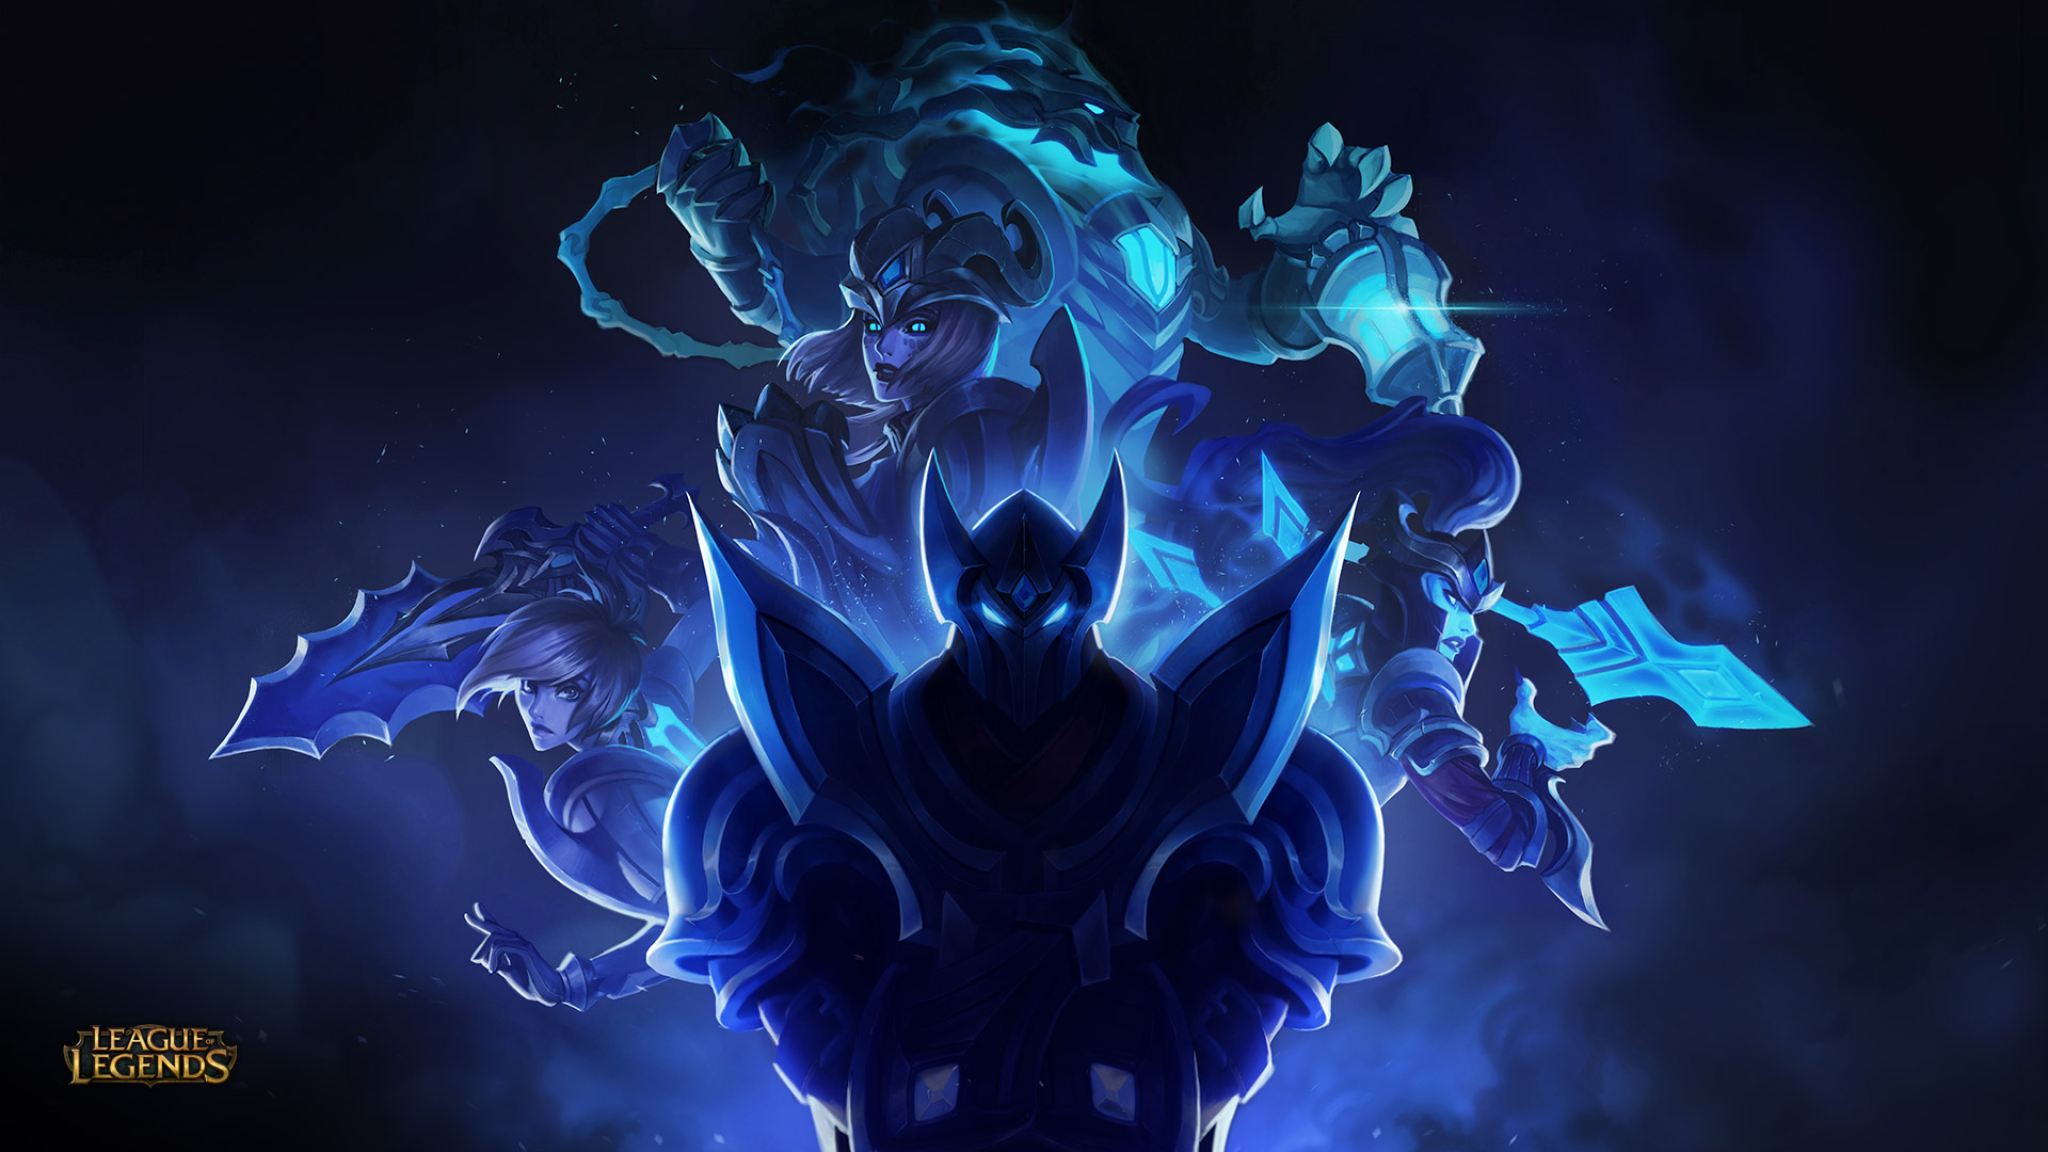 Dual Monitor Wallpaper League Of Legends: League Of Legends Zed, Riven, Shyvana And Thresh, Full HD